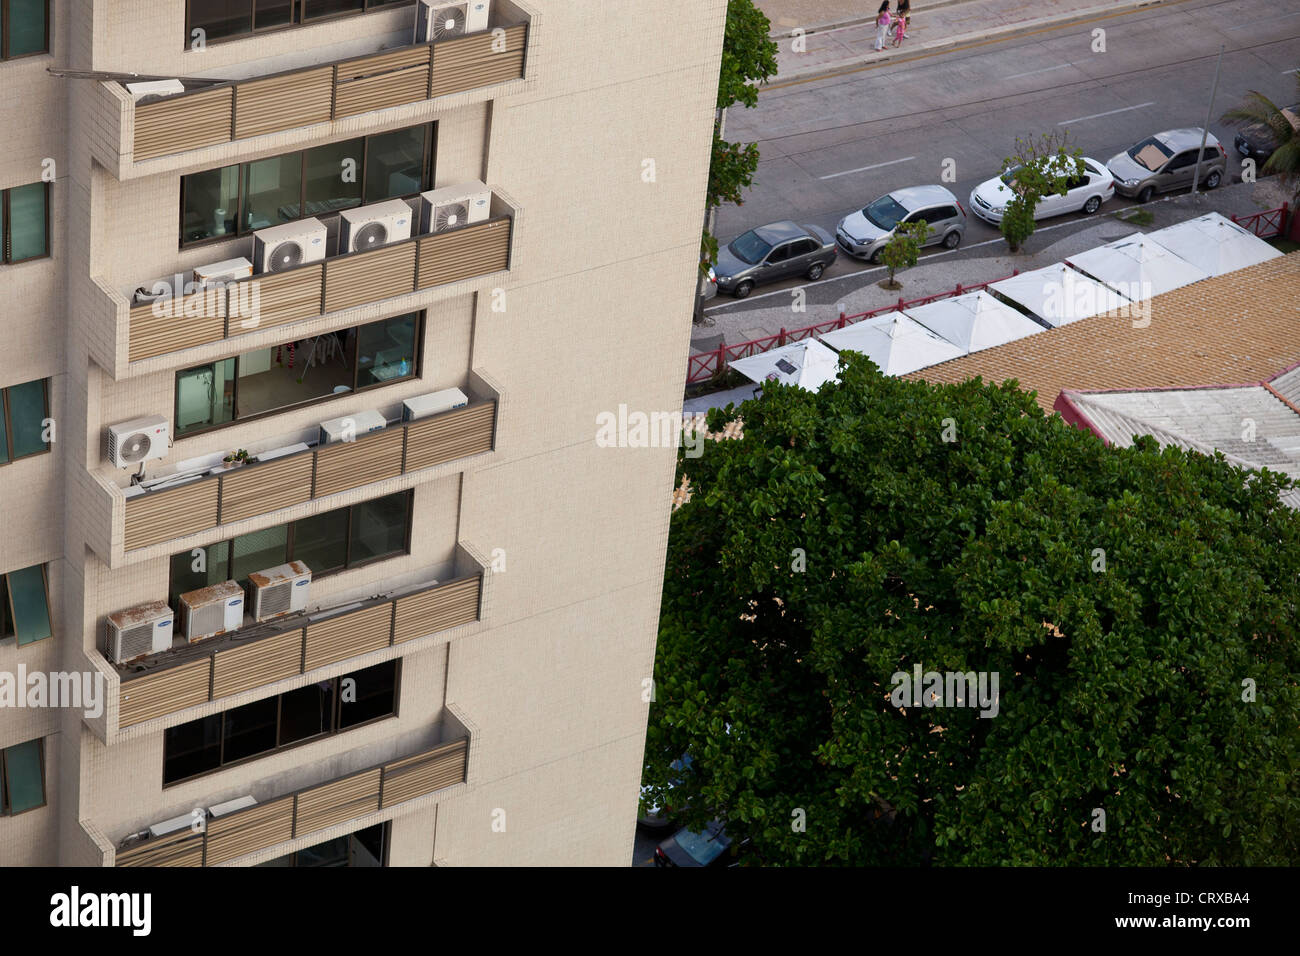 Middle-class apartments with several air conditioners, high consumption of electricity Recife Pernambuco Brazil - Stock Image